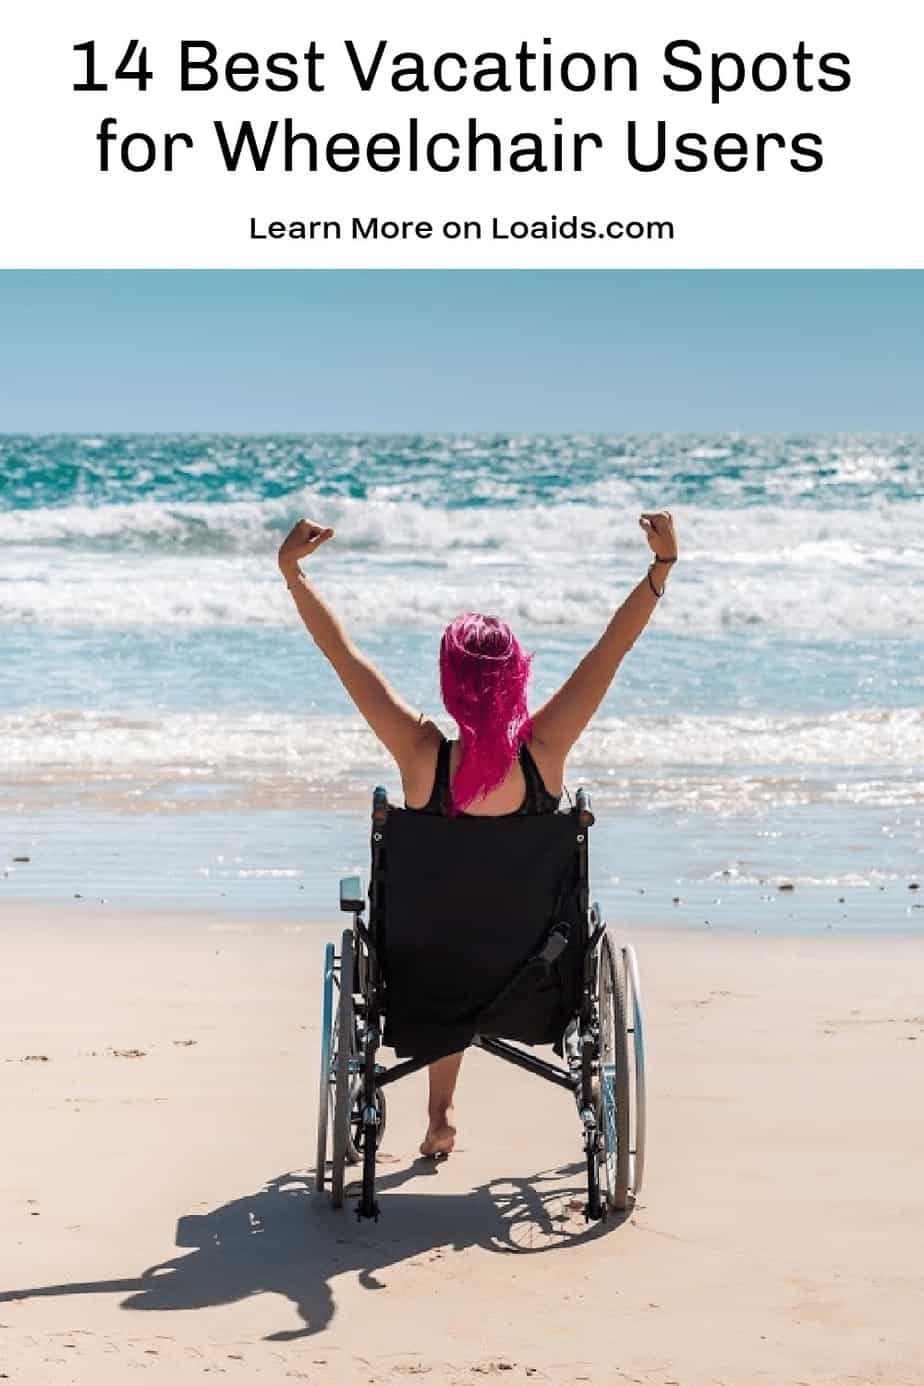 Looking for the best vacation for wheelchair users? Whether you're seeking adventure or relaxation, we came up with some amazing ideas. Take a look!